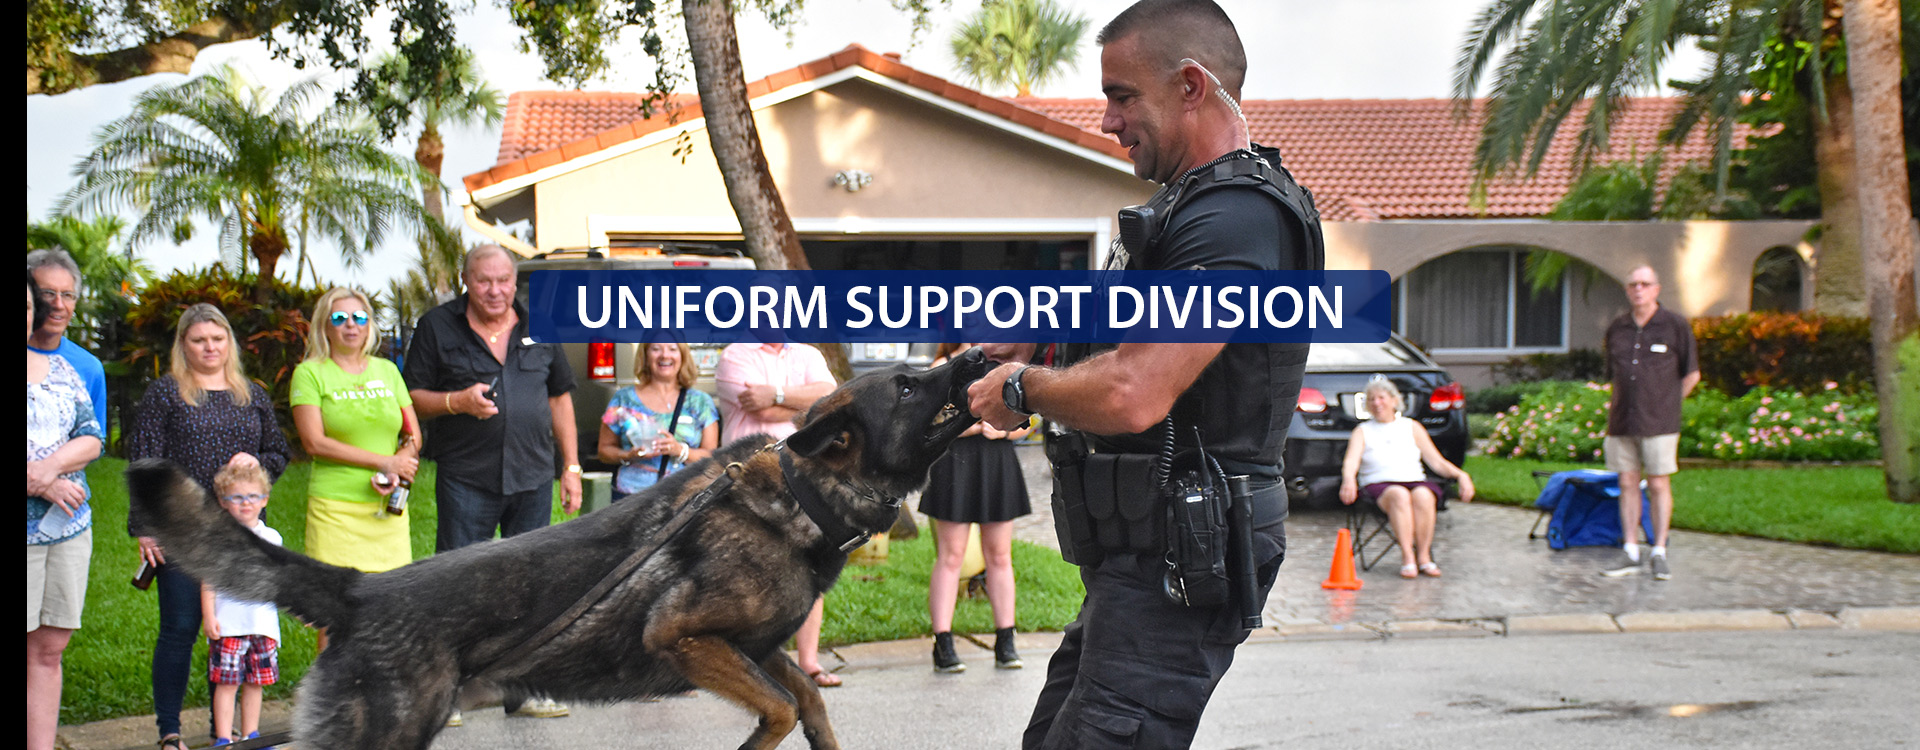 Uniform Support Division